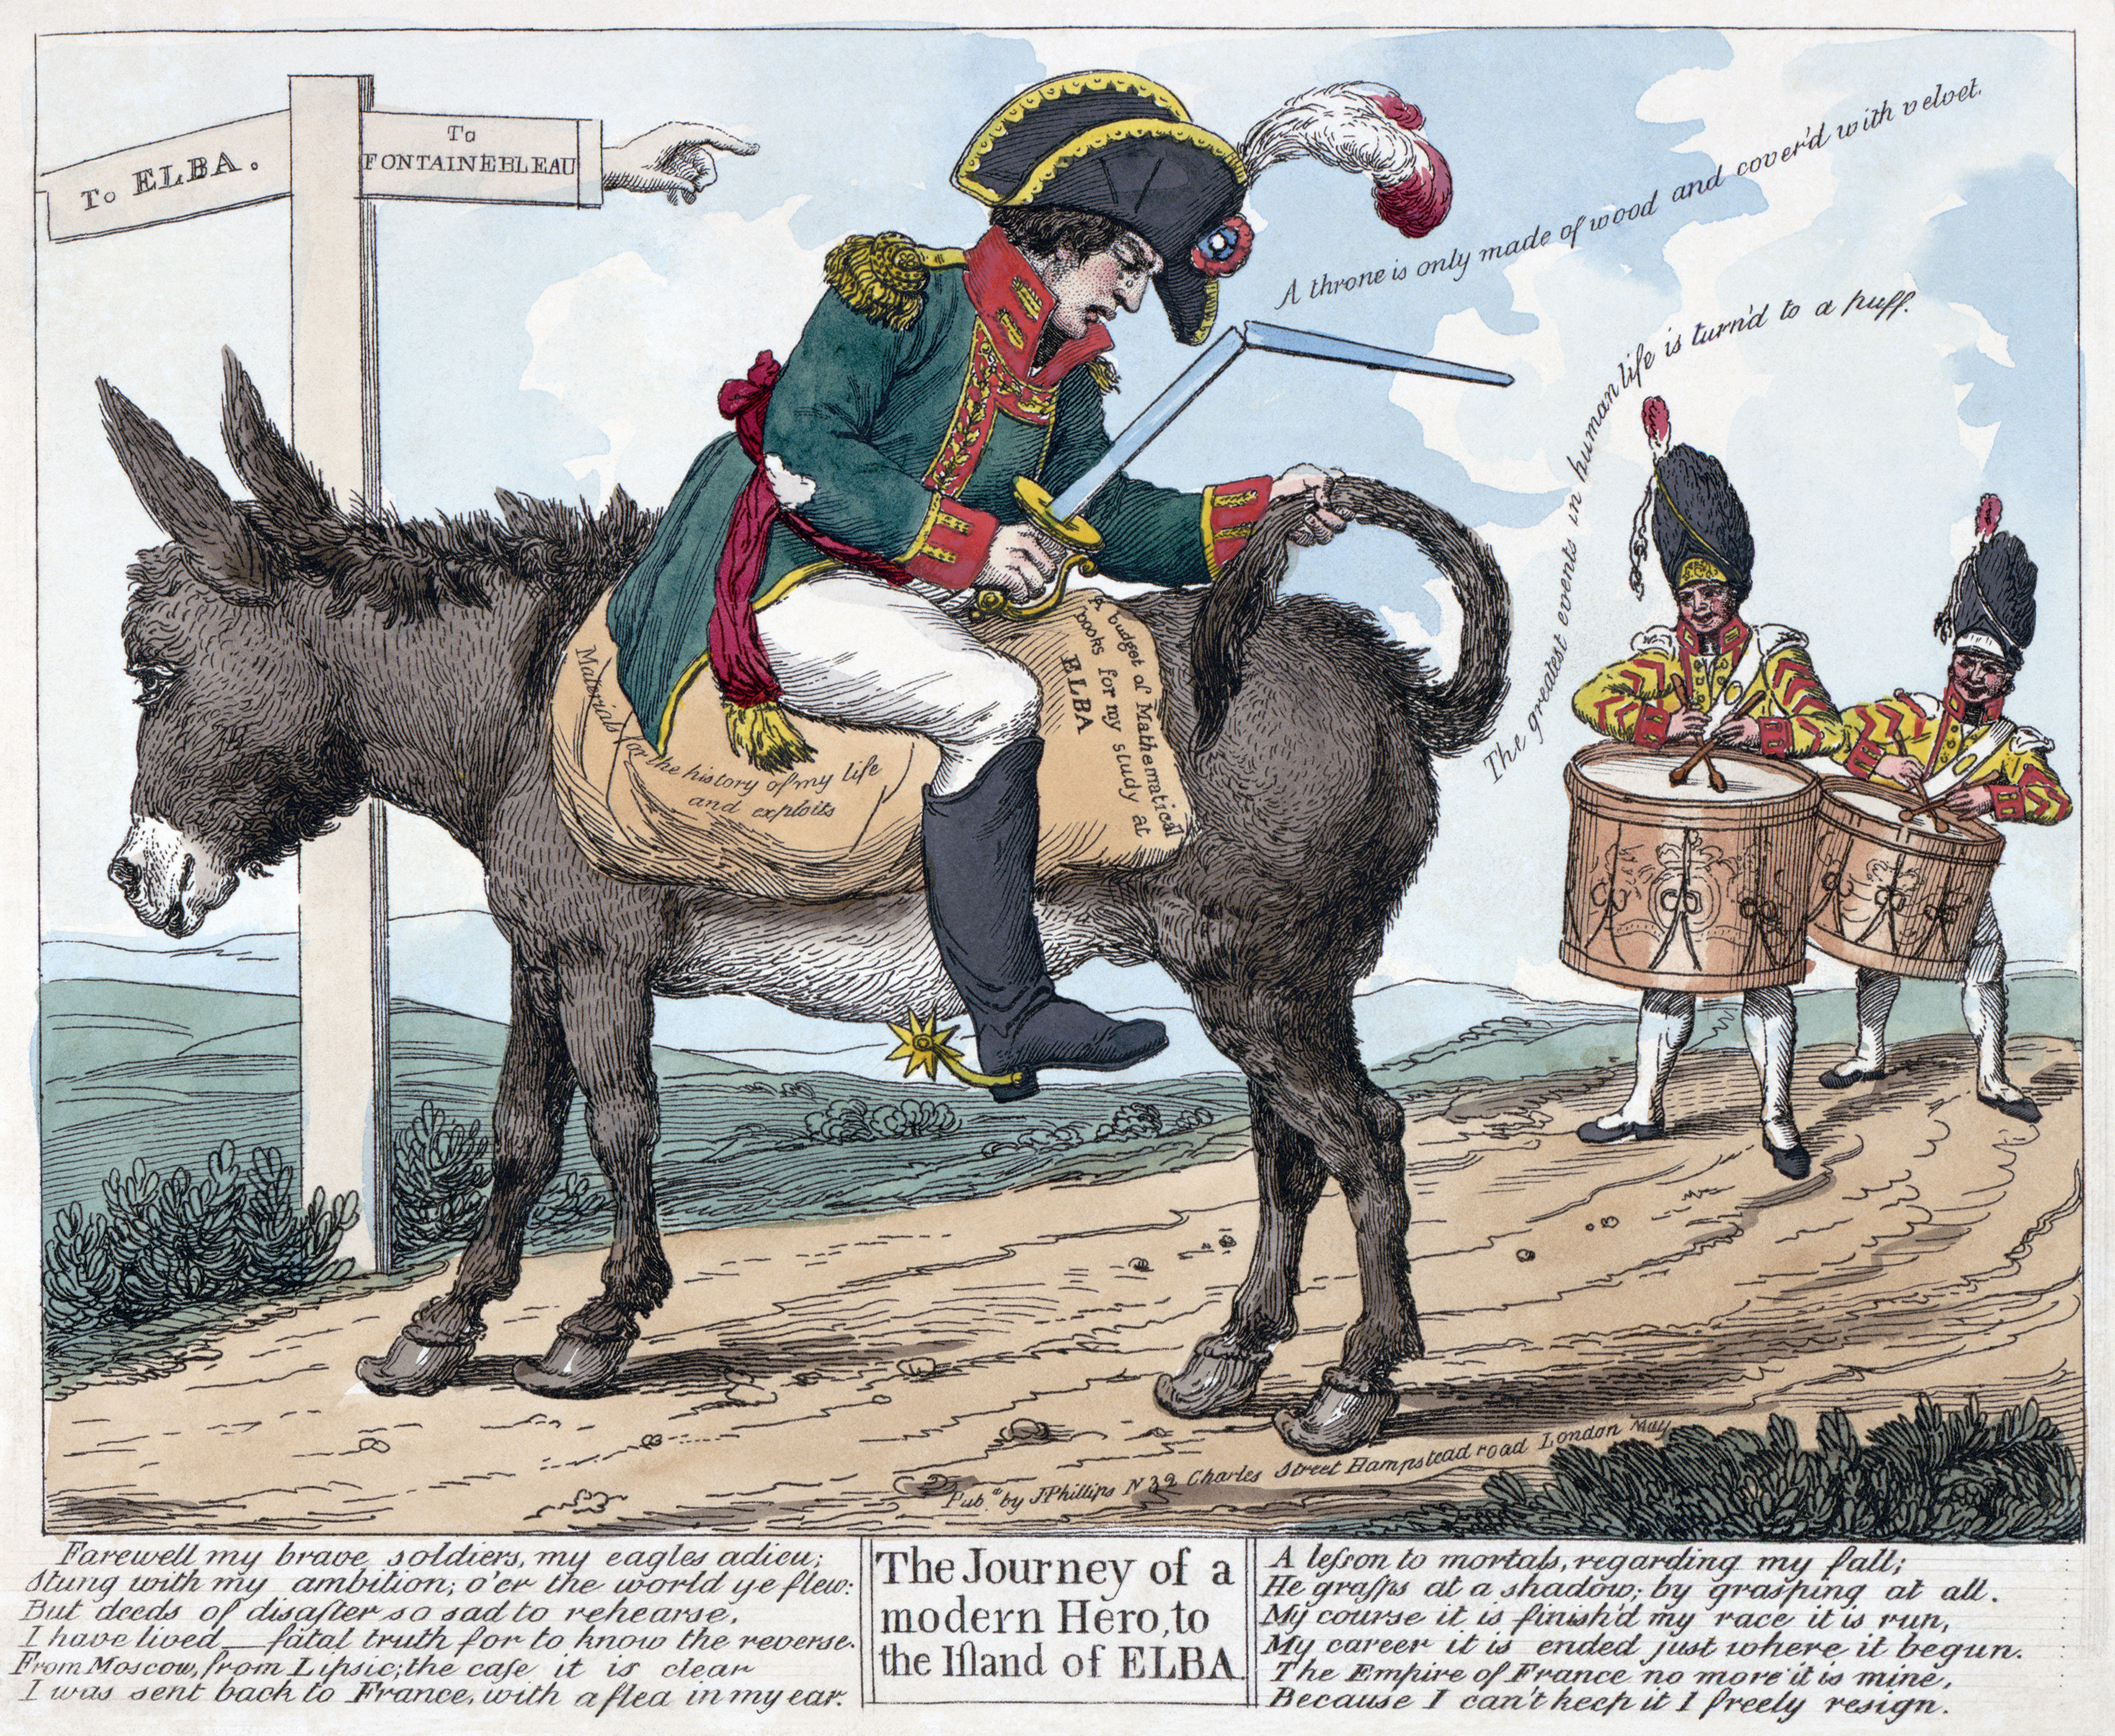 British etching from 1814 in celebration of Napoleon's first exile to Elba at the close of the War of the Sixth Coalition